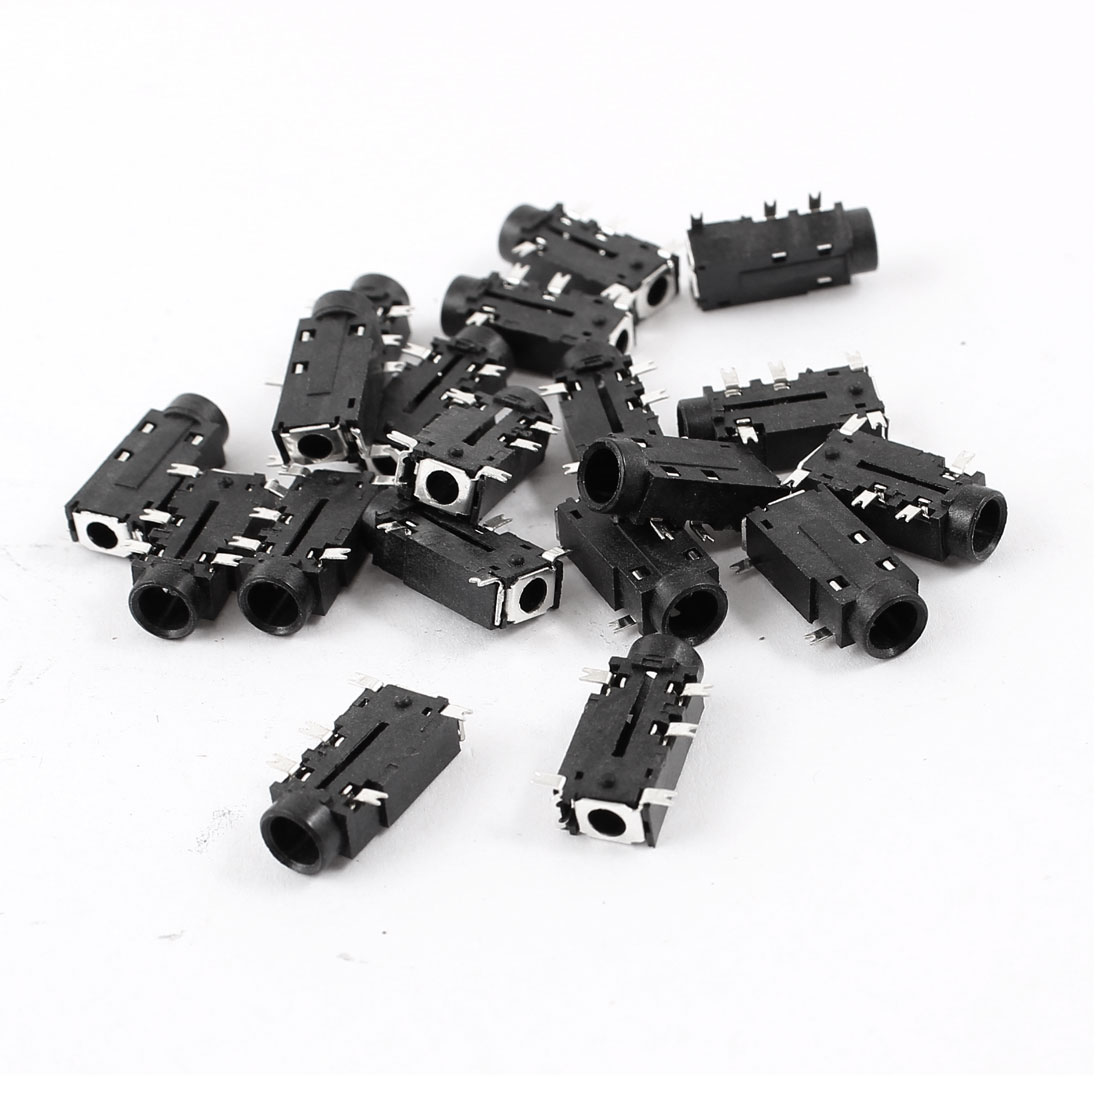 20 Pcs PCB Mount 5 Pin Terminals 3.5mm Female Stereo Audio Jack Connector